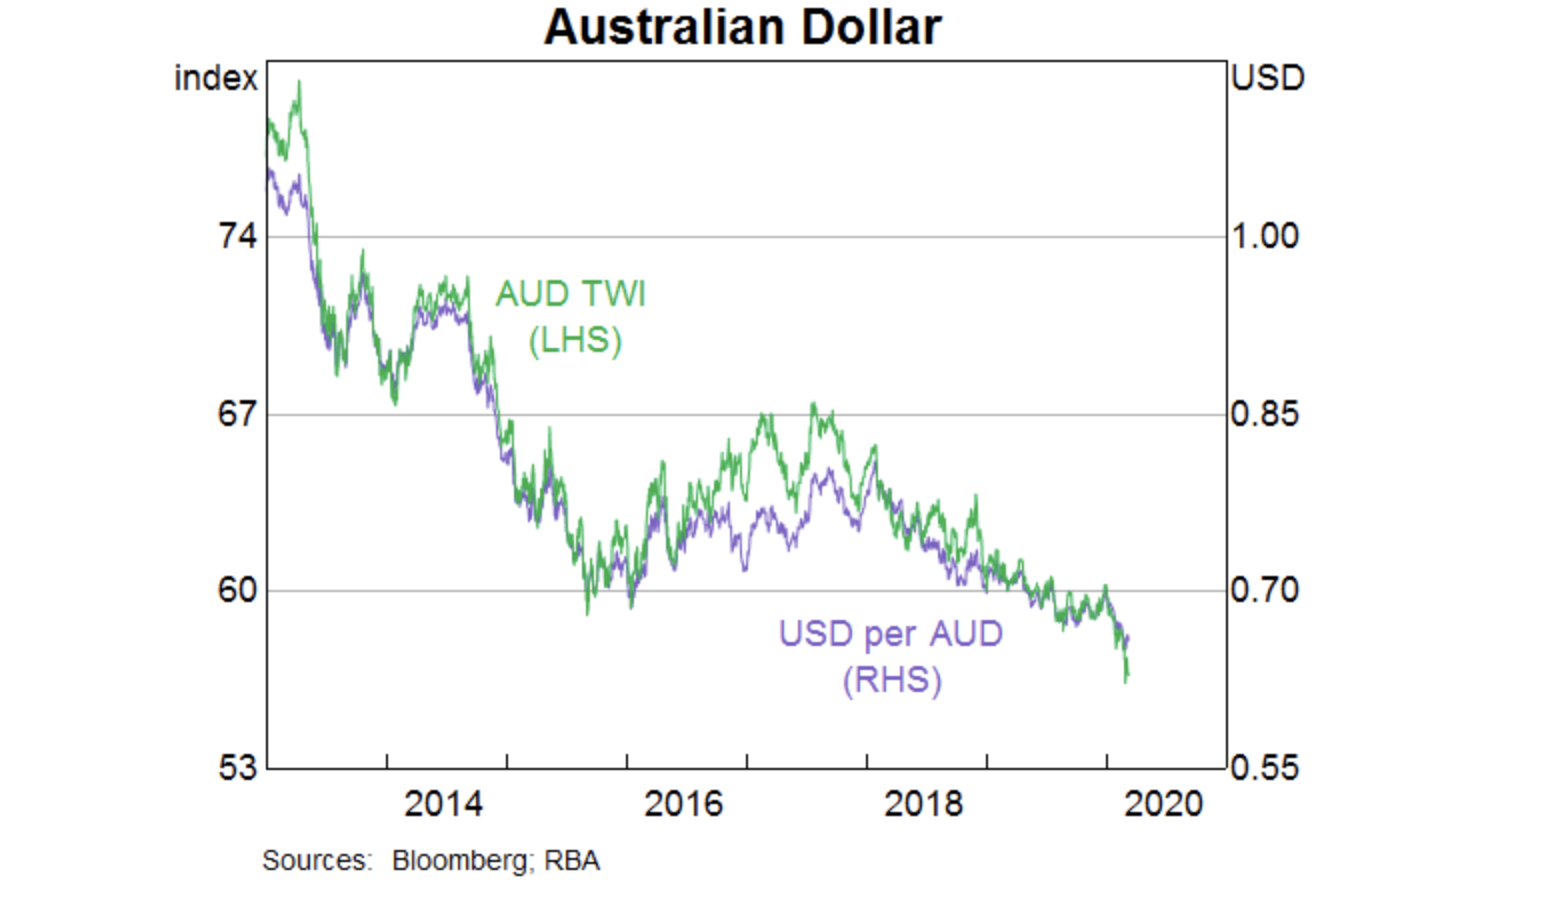 ▲ The Australian dollar has depreciated by 6 per cent since the beginning of the year to decade lows against the US dollar.